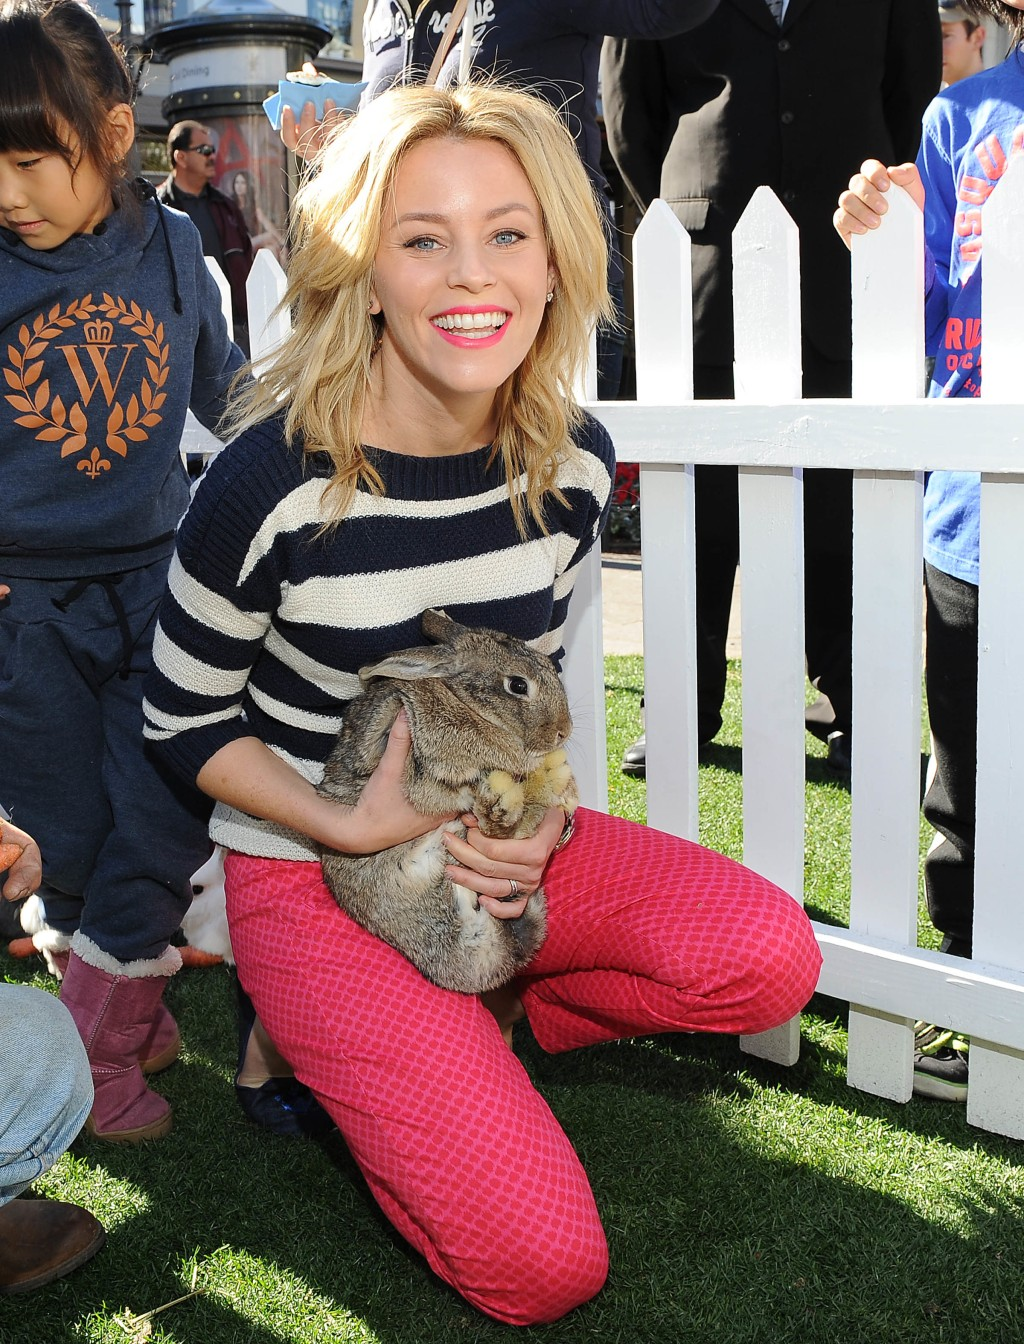 ElizabethBanks_Rabbit2_babyGap